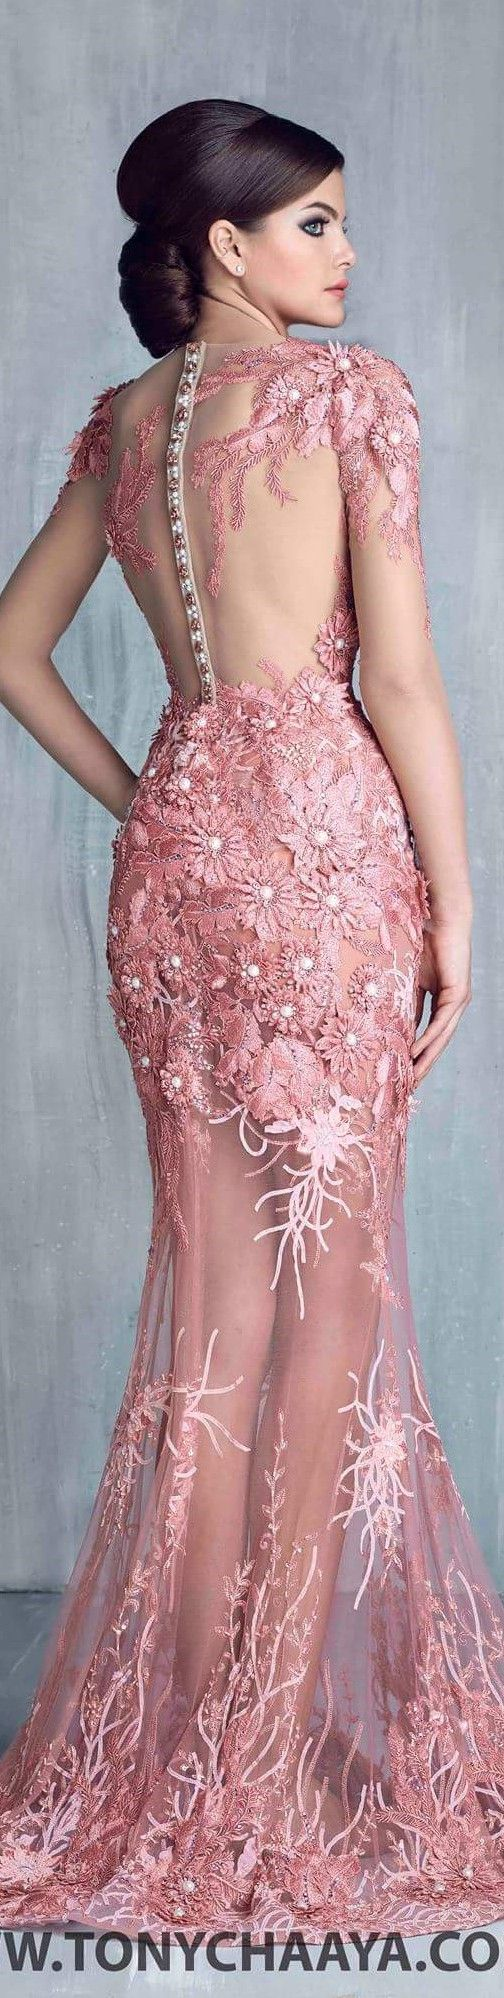 Tony Chaaya couture 2016 coral lace dress women fashion outfit clothing style apparel @roressclothes closet ideas